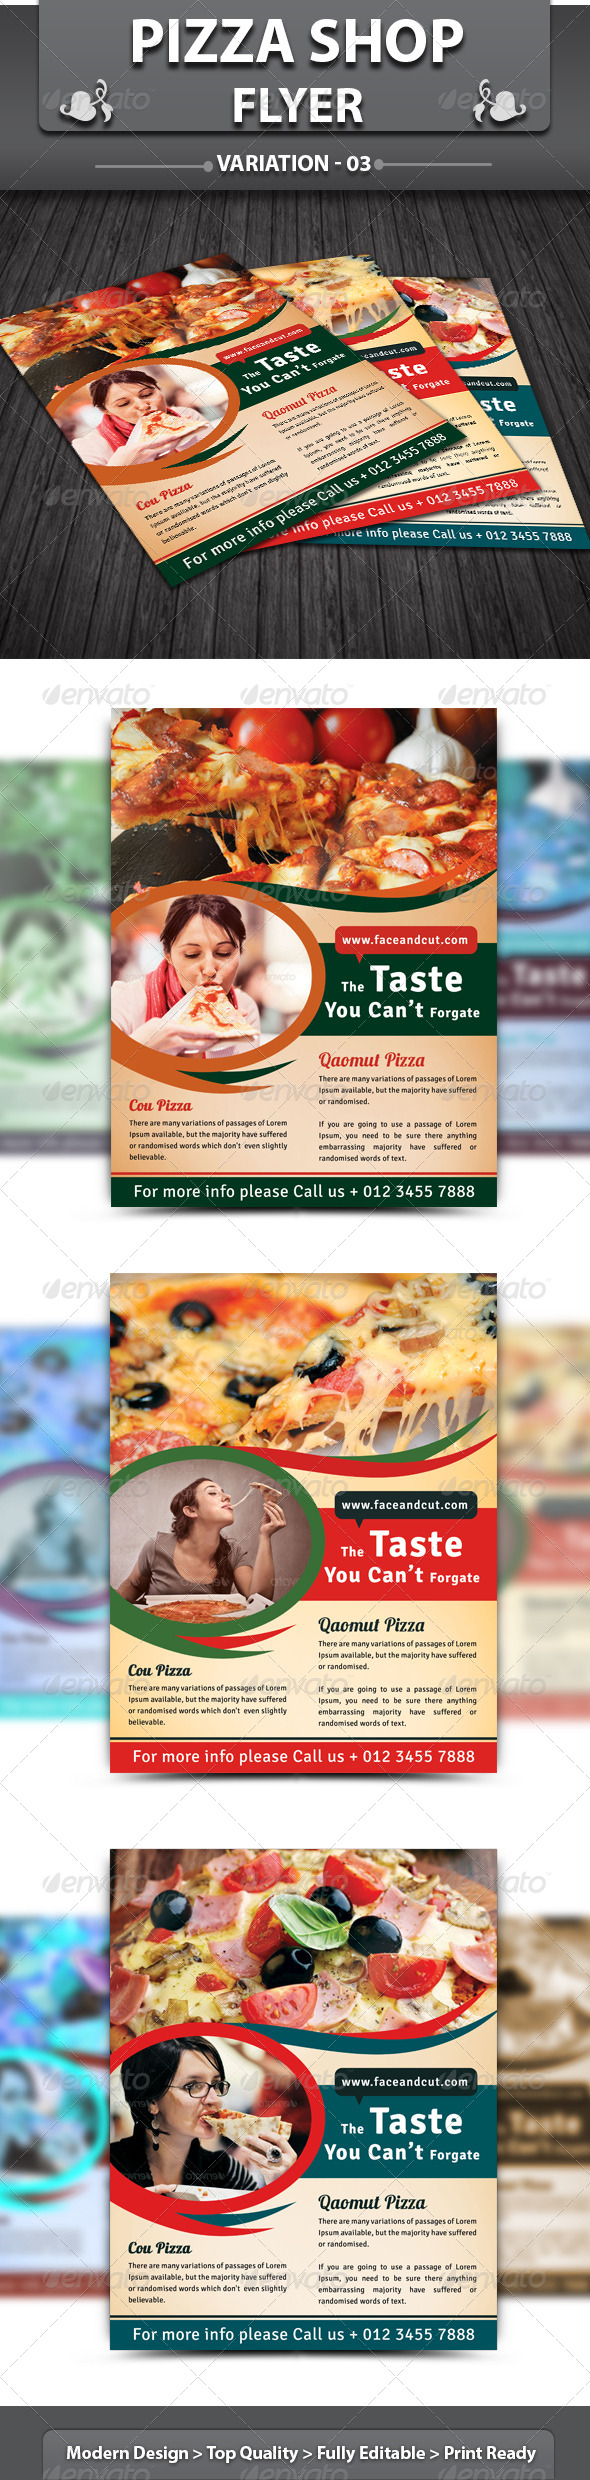 Pizza Shop Flyer v3 - Restaurant Flyers